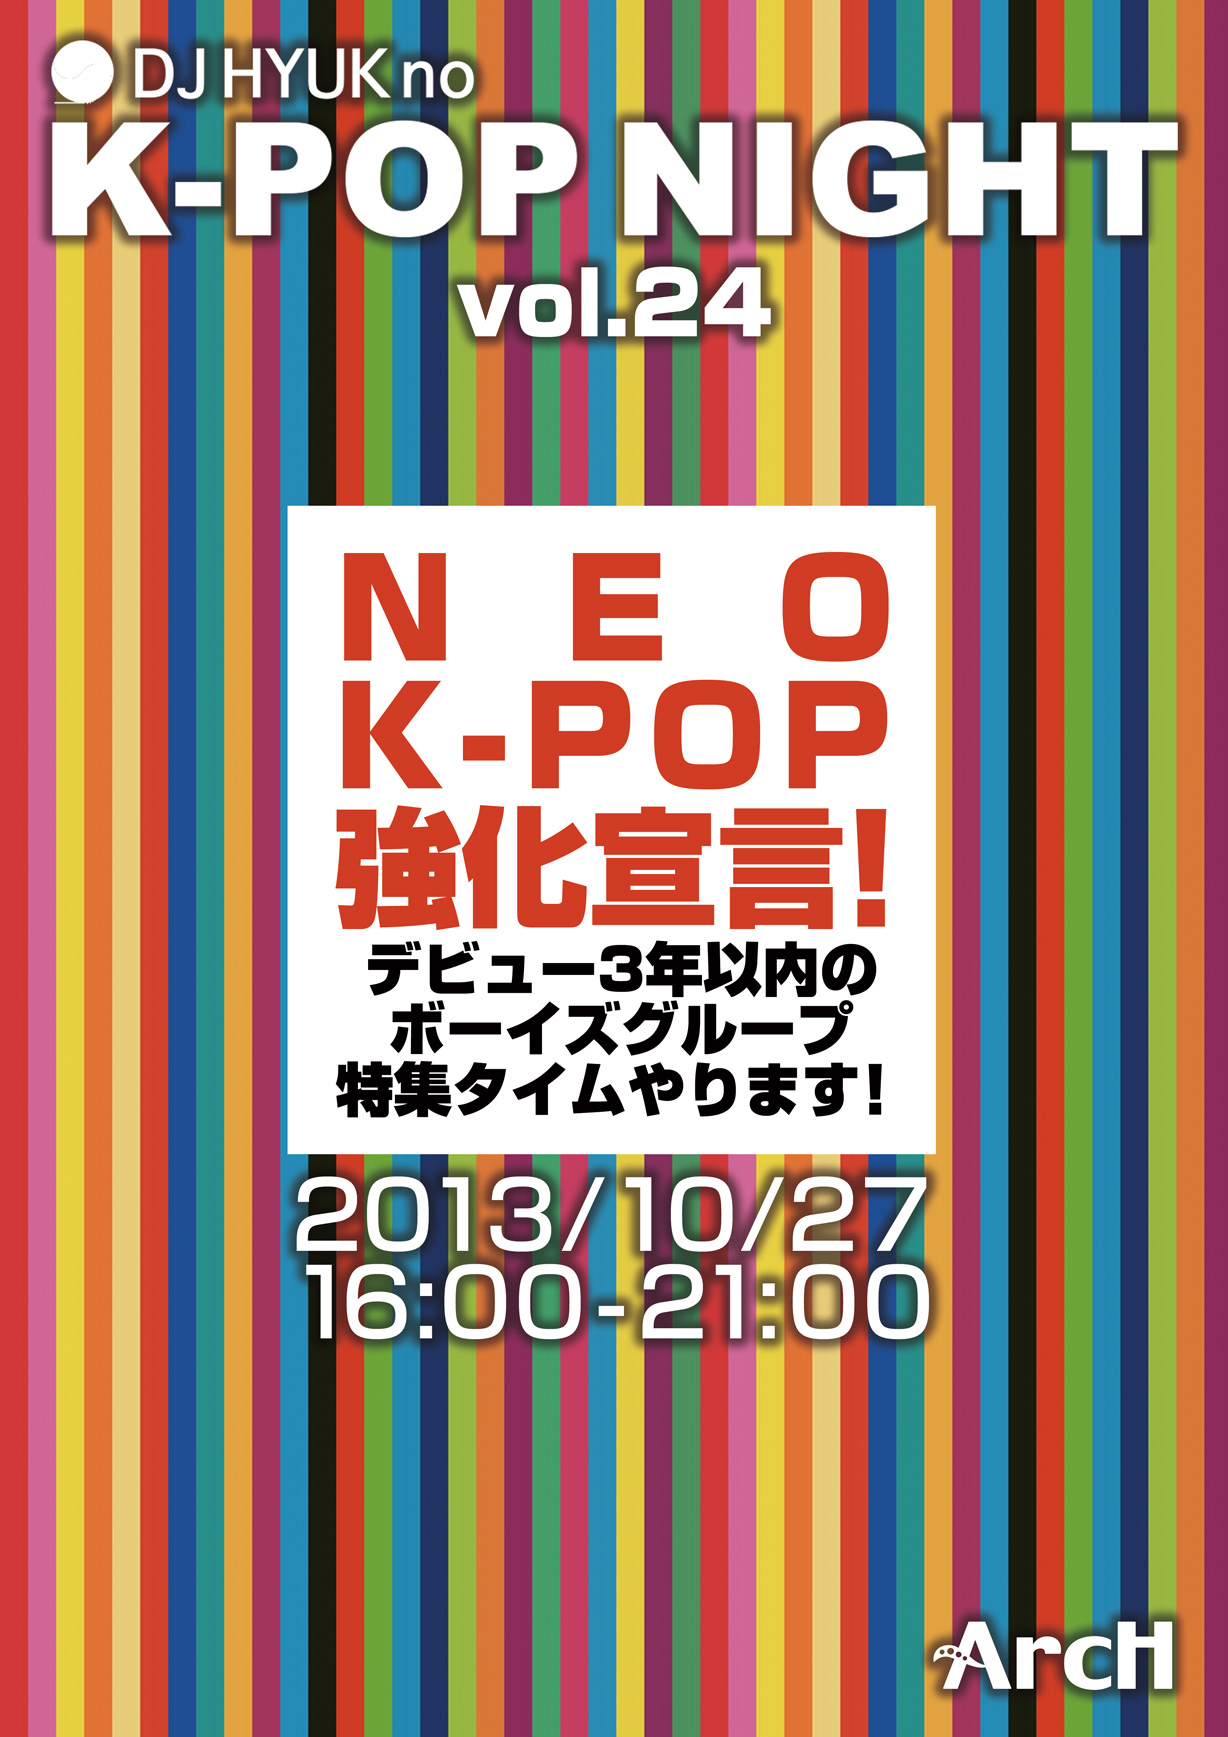 HYUKのK-POP NIGHT vol.24  - 1228x1737 434.9kb